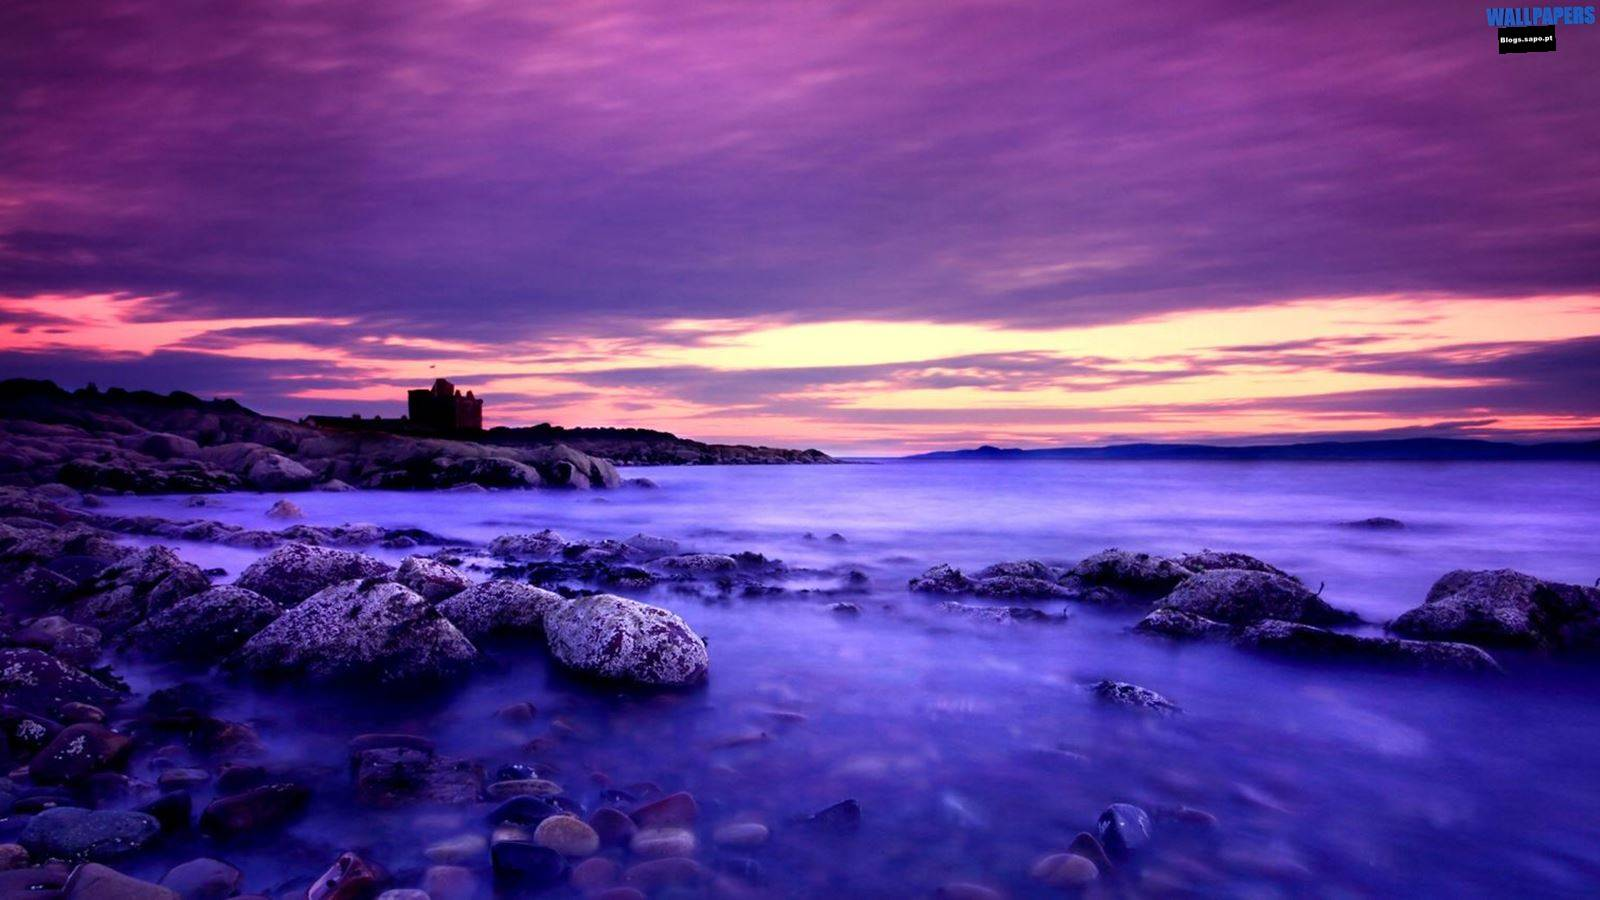 Violet Clouds And Blue Water Wallpaper 1600×900